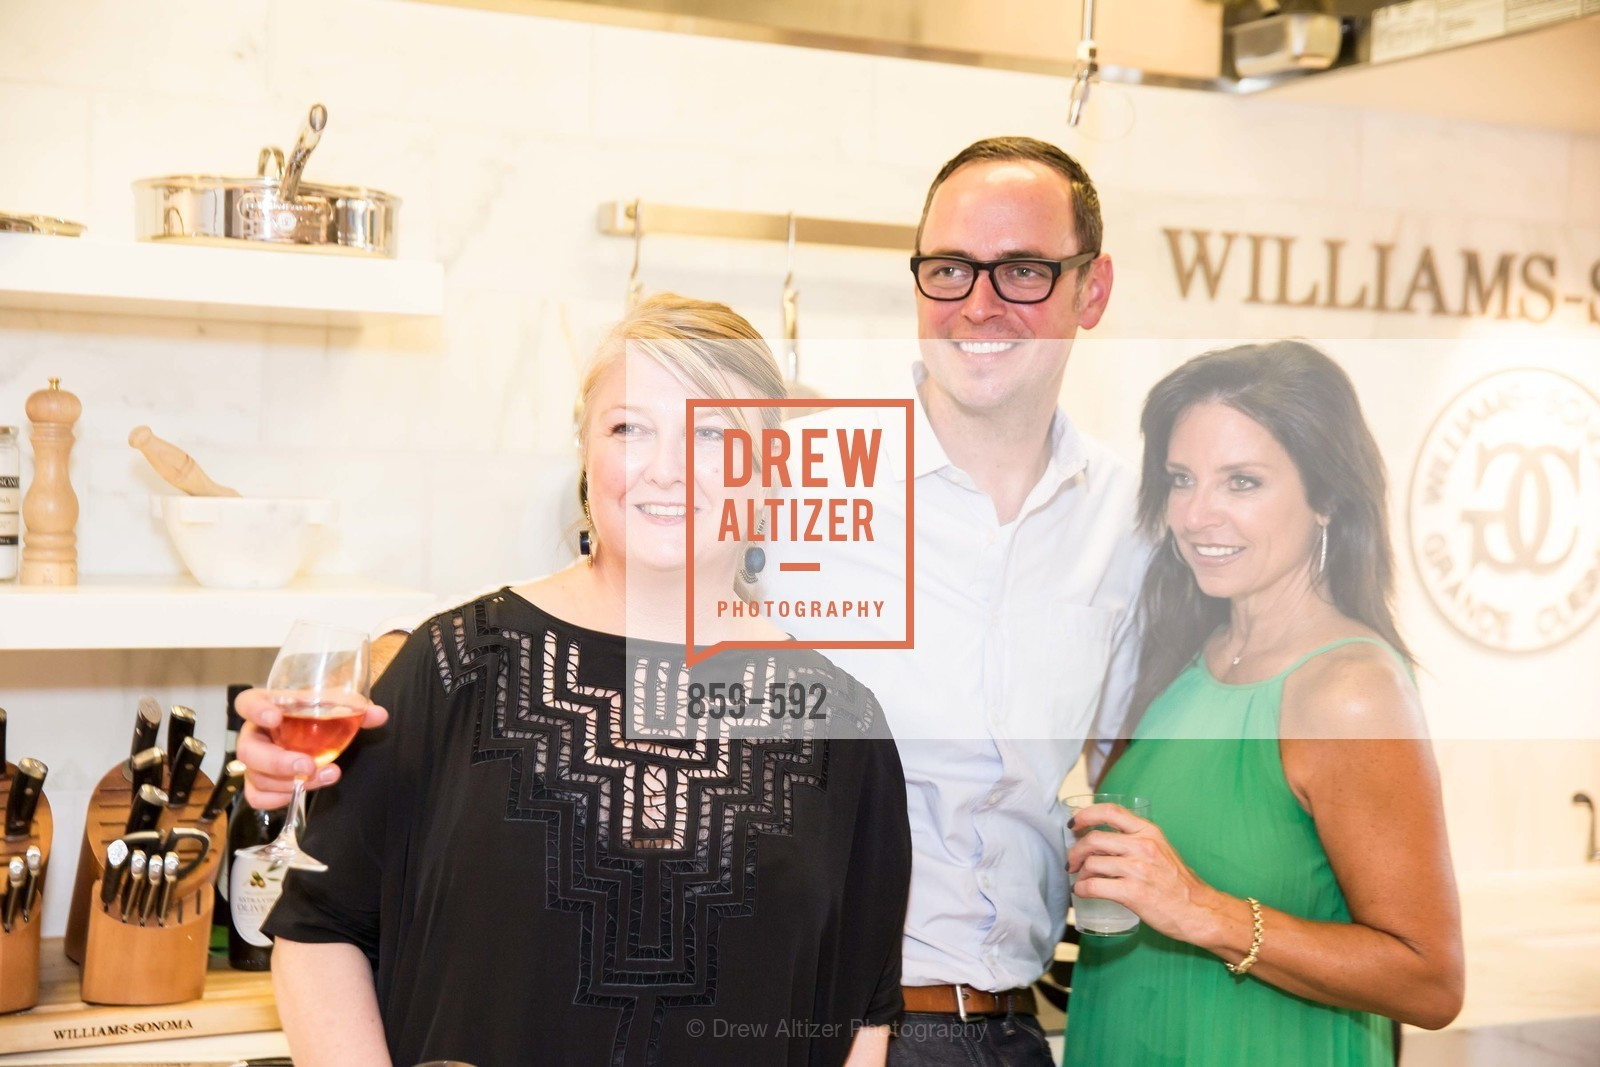 Anna Lask, Shane Brogan, Janice Greenwood, WILLIAMS-SONOMA Cochon BBQ Celebration, US, October 3rd, 2014,Drew Altizer, Drew Altizer Photography, full-service agency, private events, San Francisco photographer, photographer california